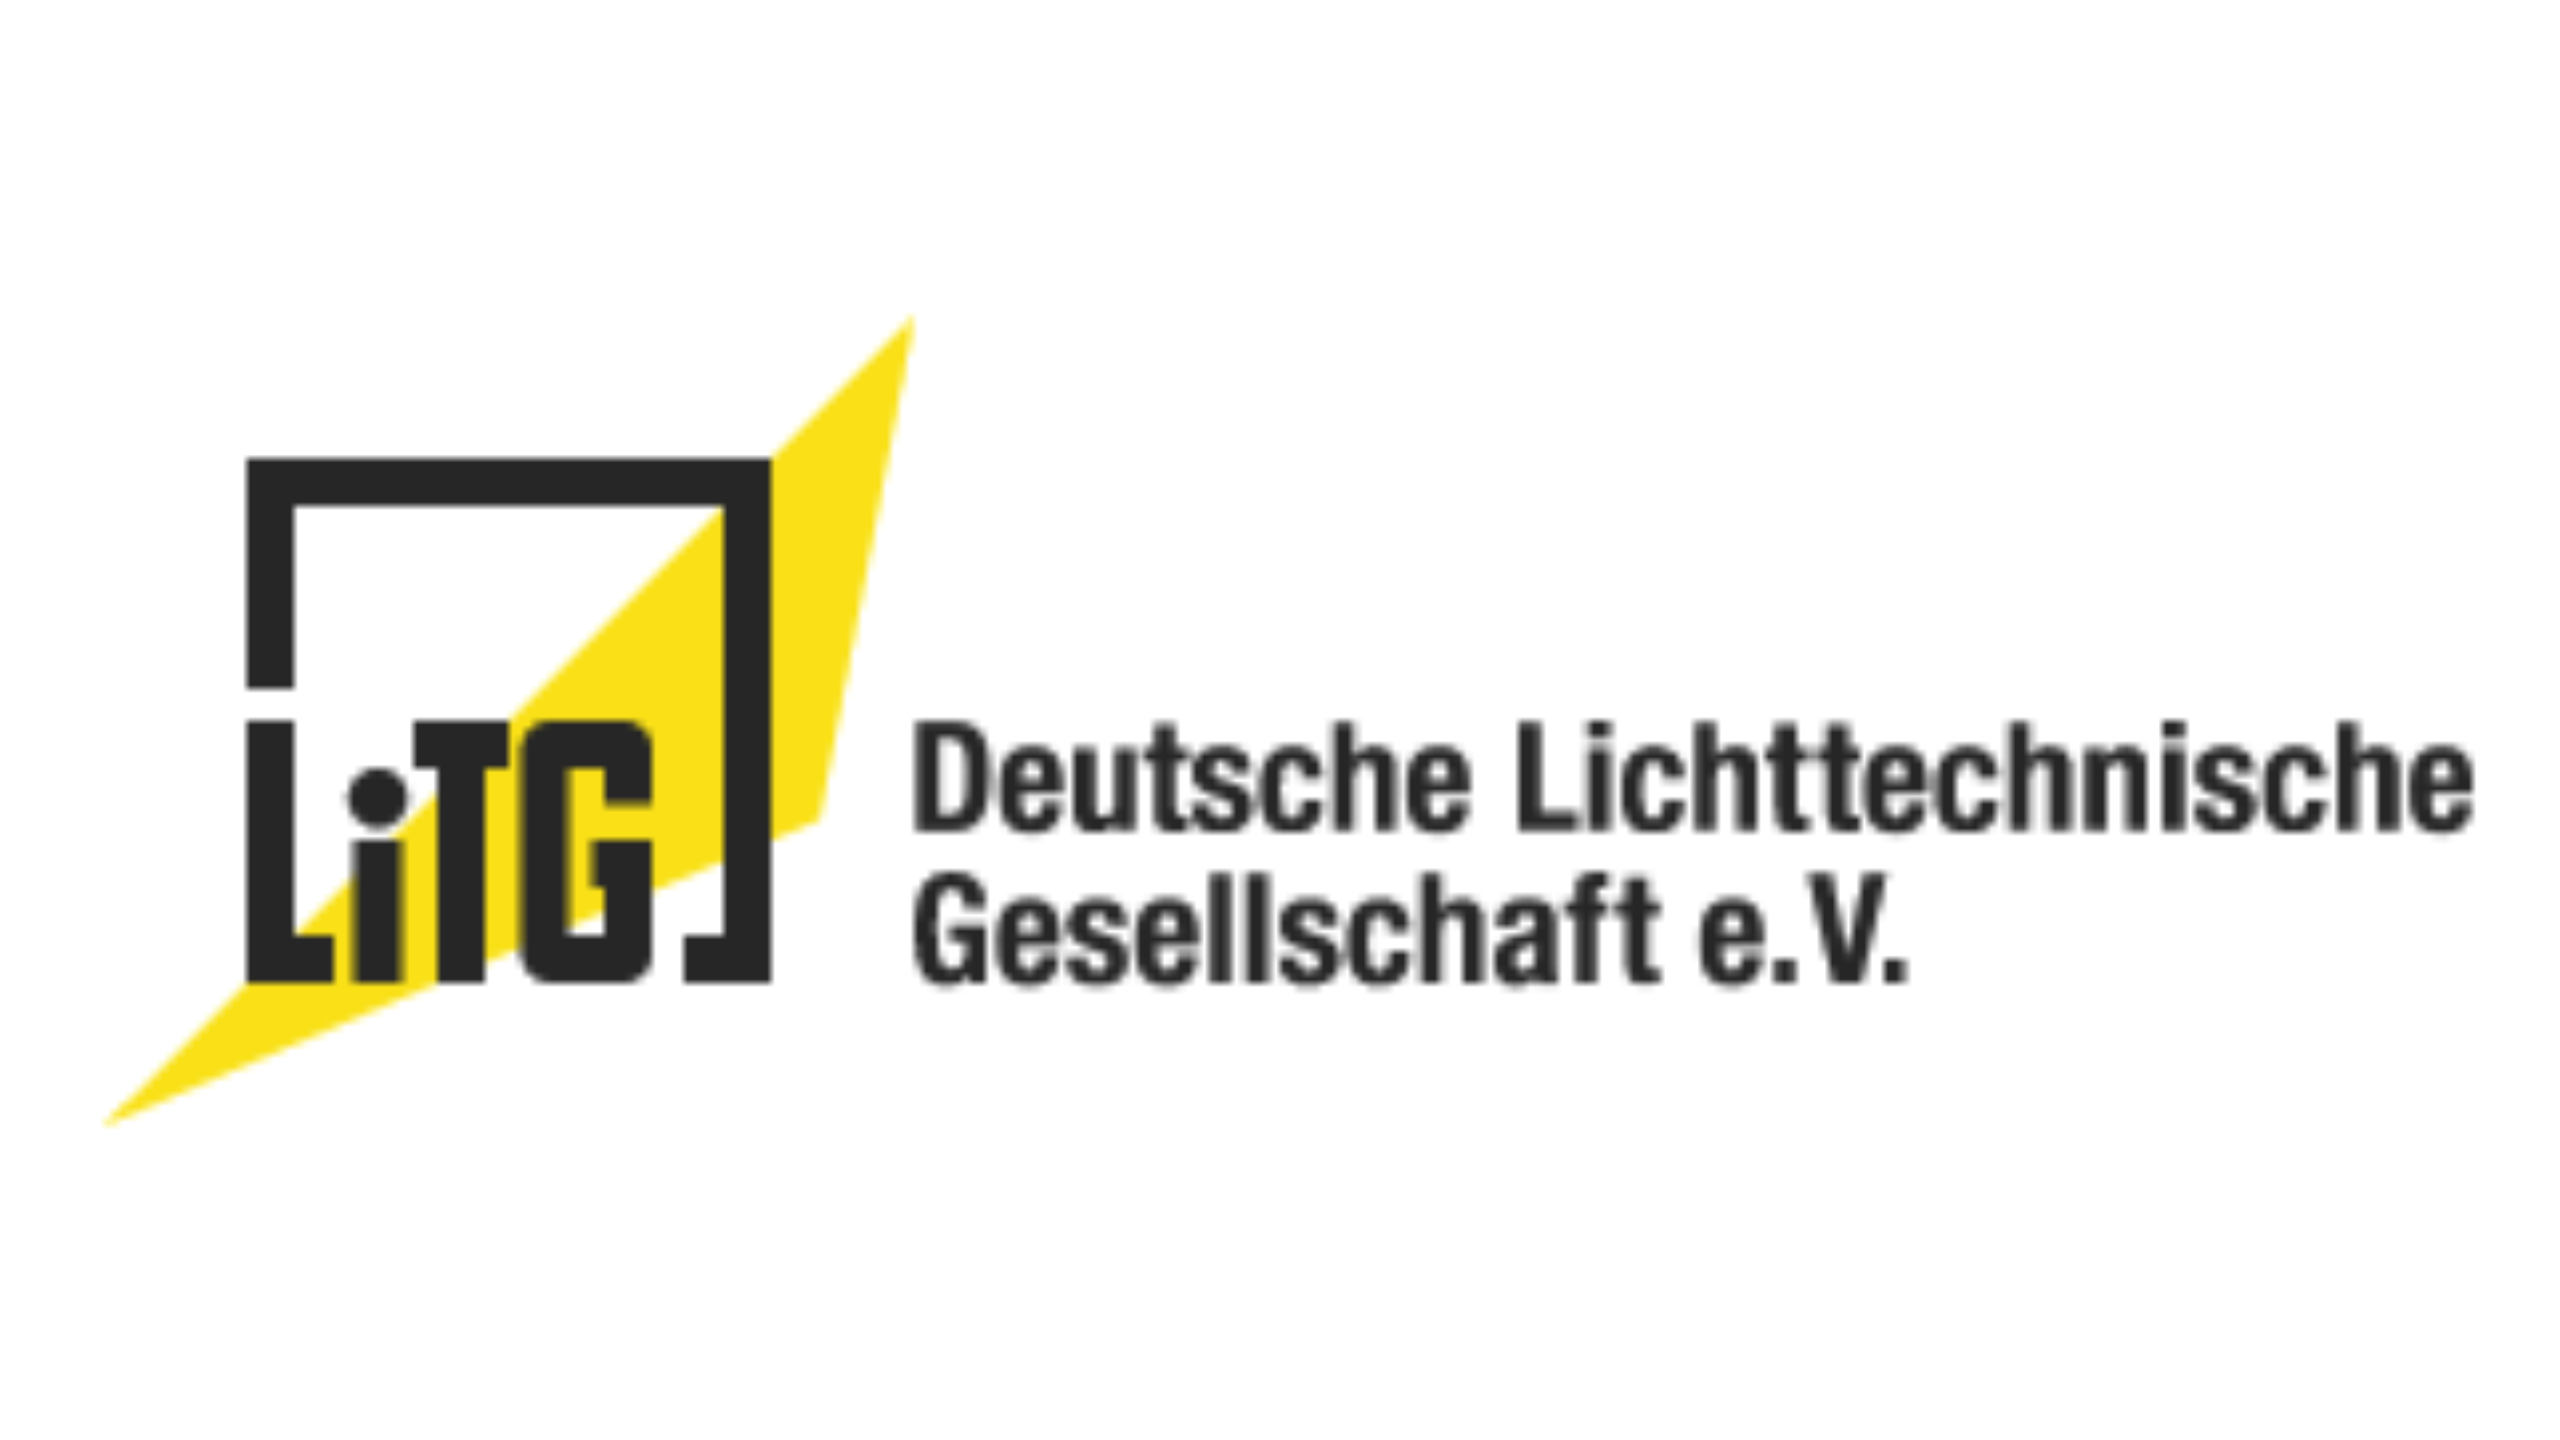 events licht litg logo 16 9